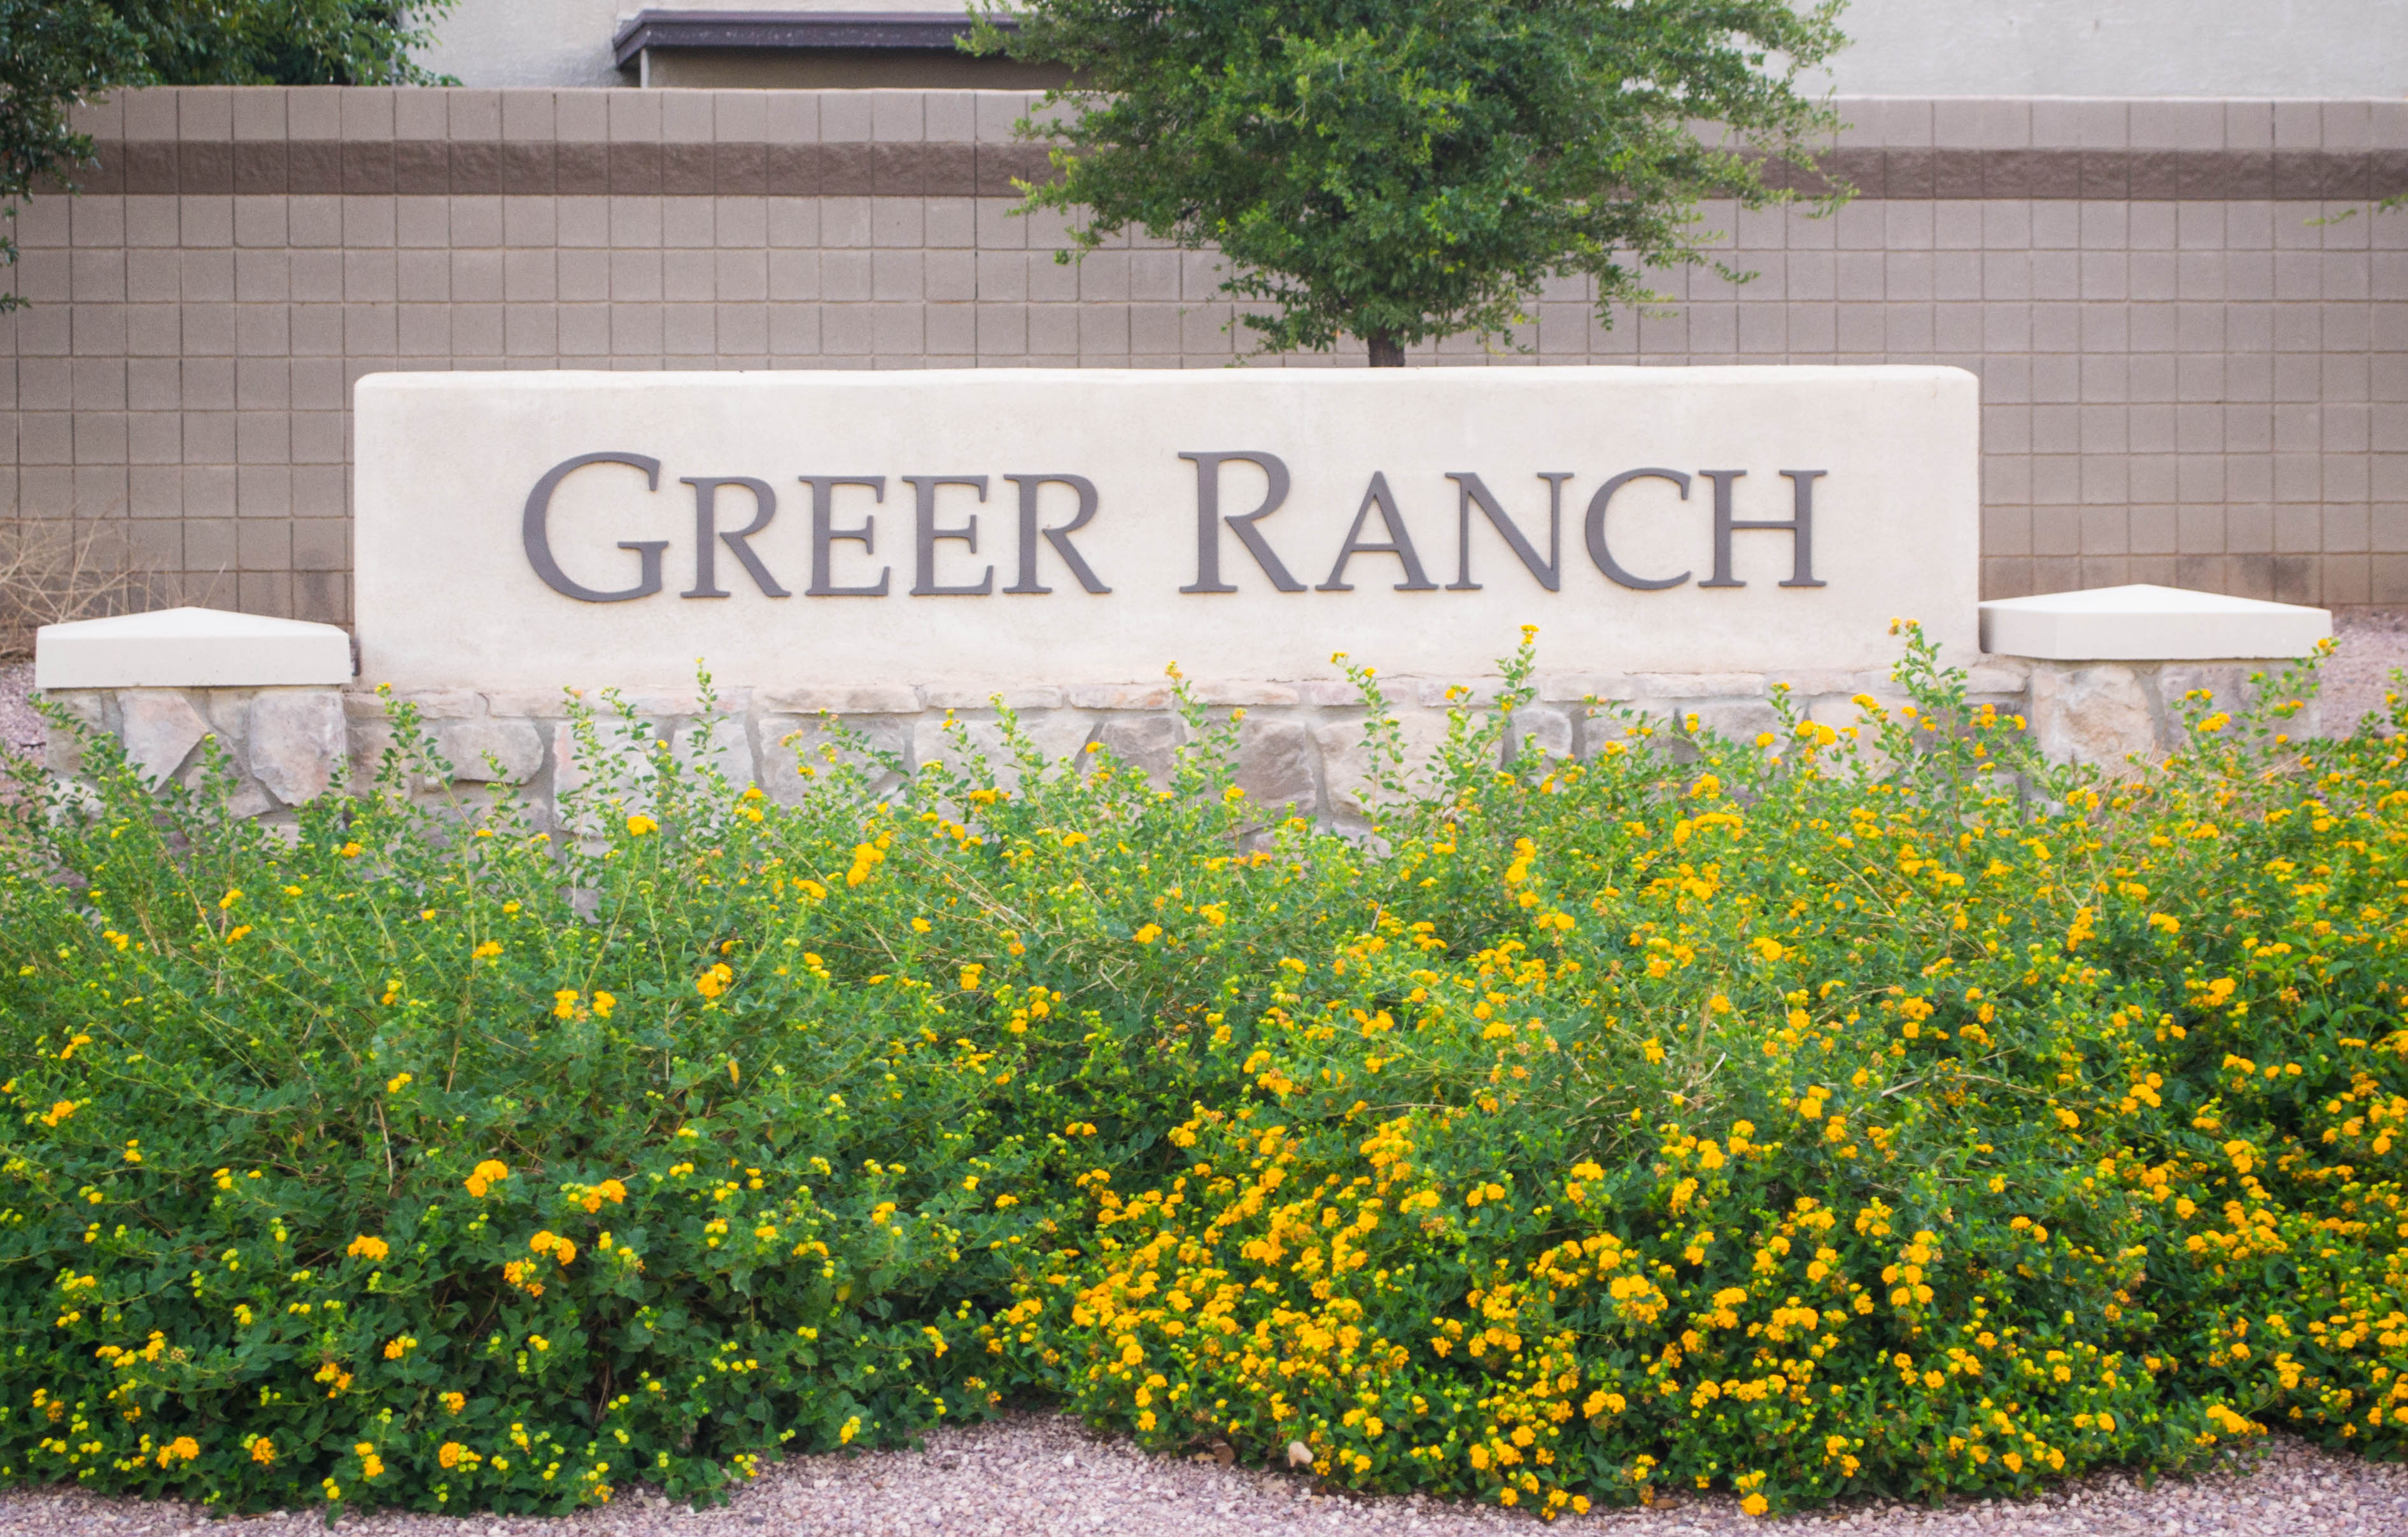 <!DOCTYPE html> <html> <head> <style> p {text-align:center;} </style> </head> <body>  <p>Greer Ranch